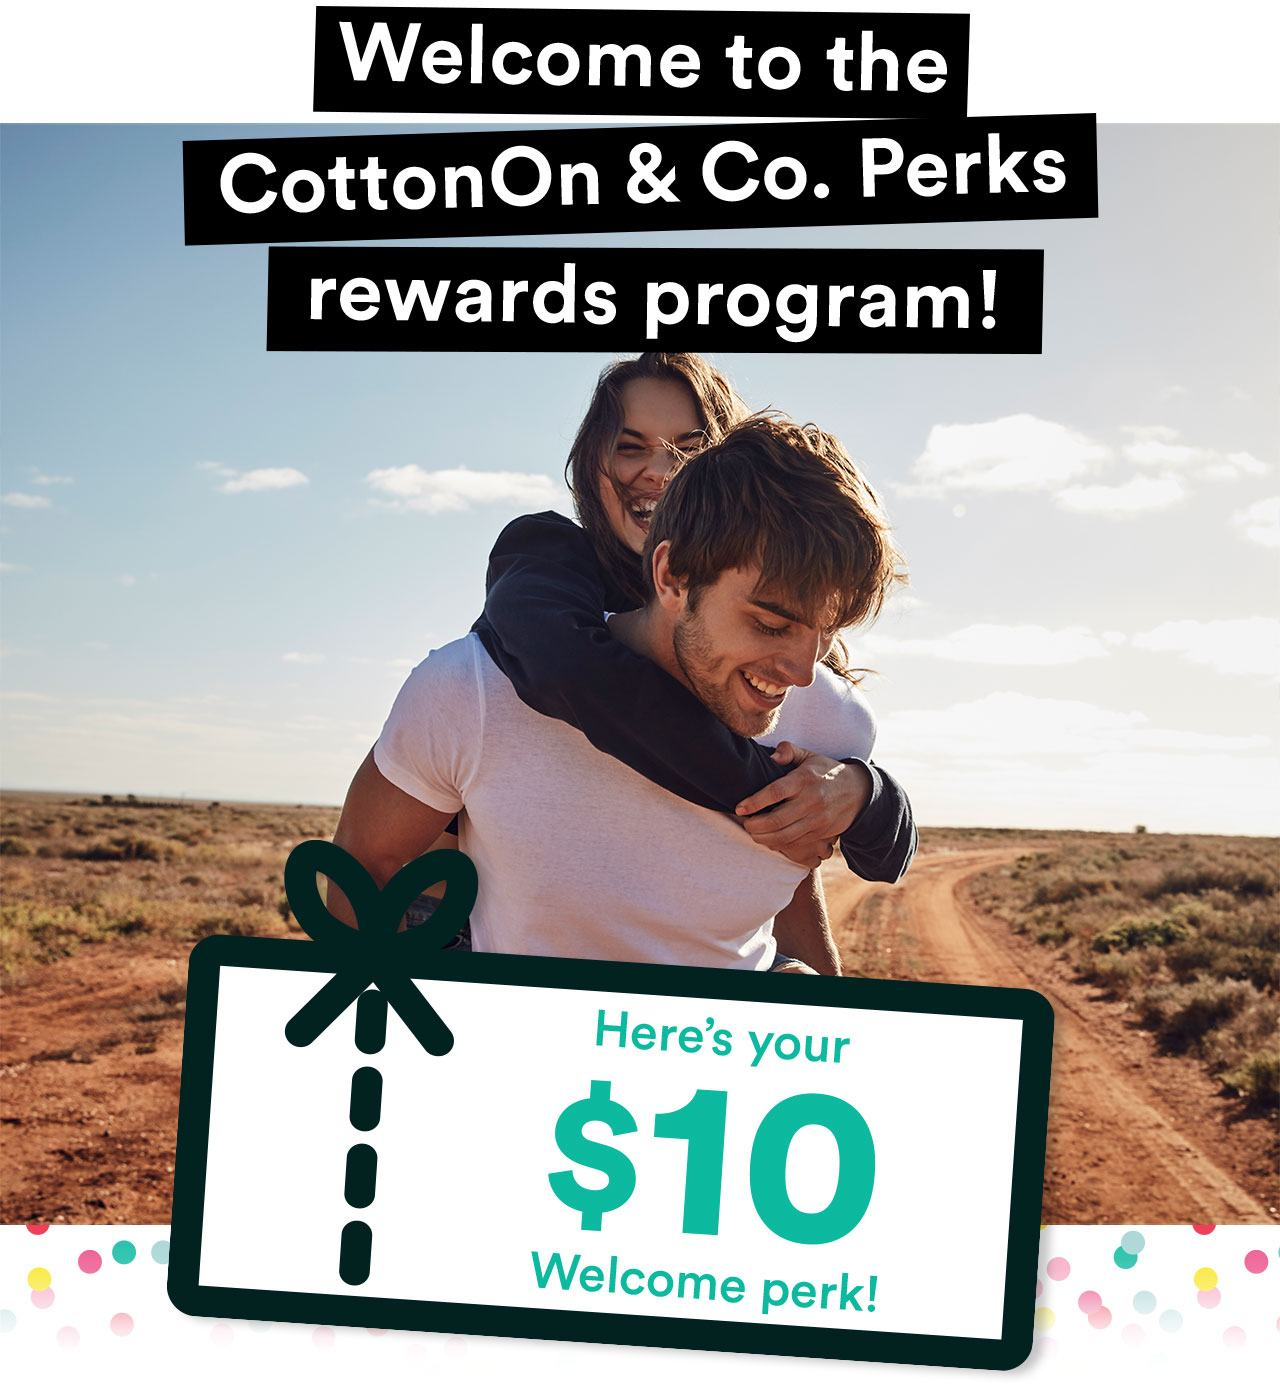 Welcome to the CottonOn and Co. Perks rewards program!